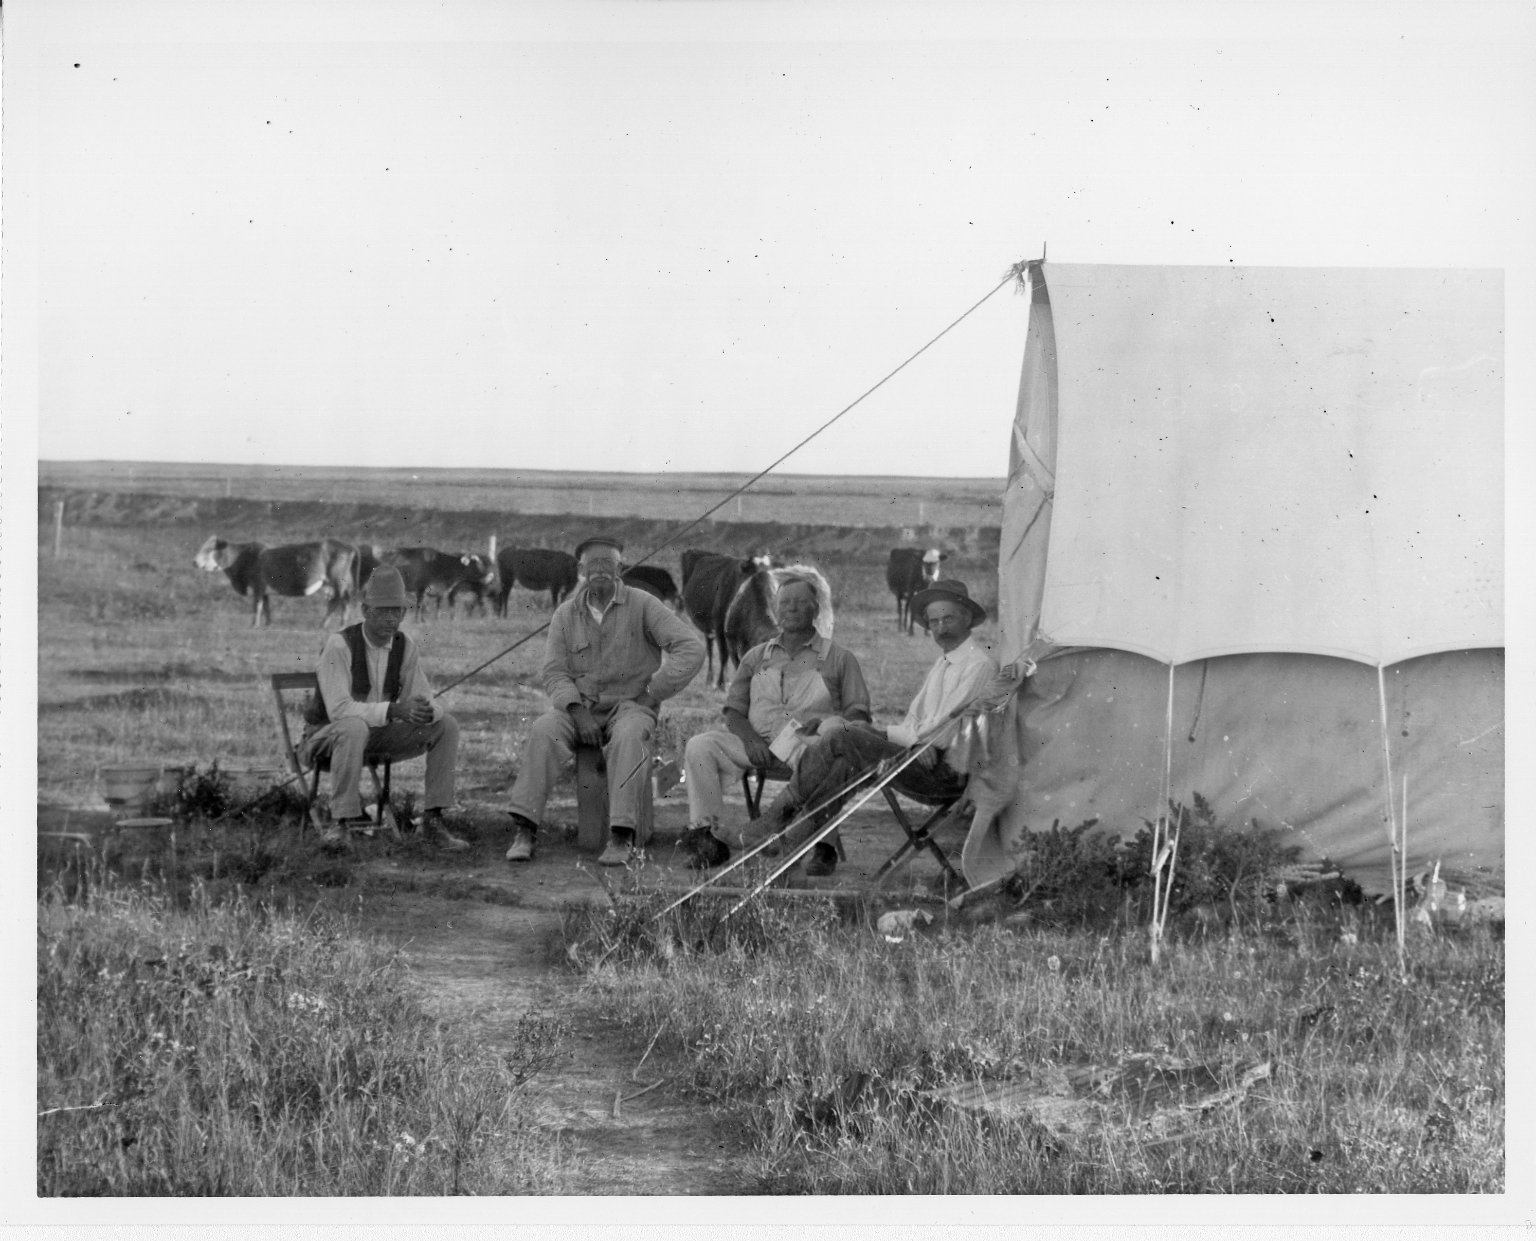 Field Crew and Camp Scene Horsetail Creek Excavation